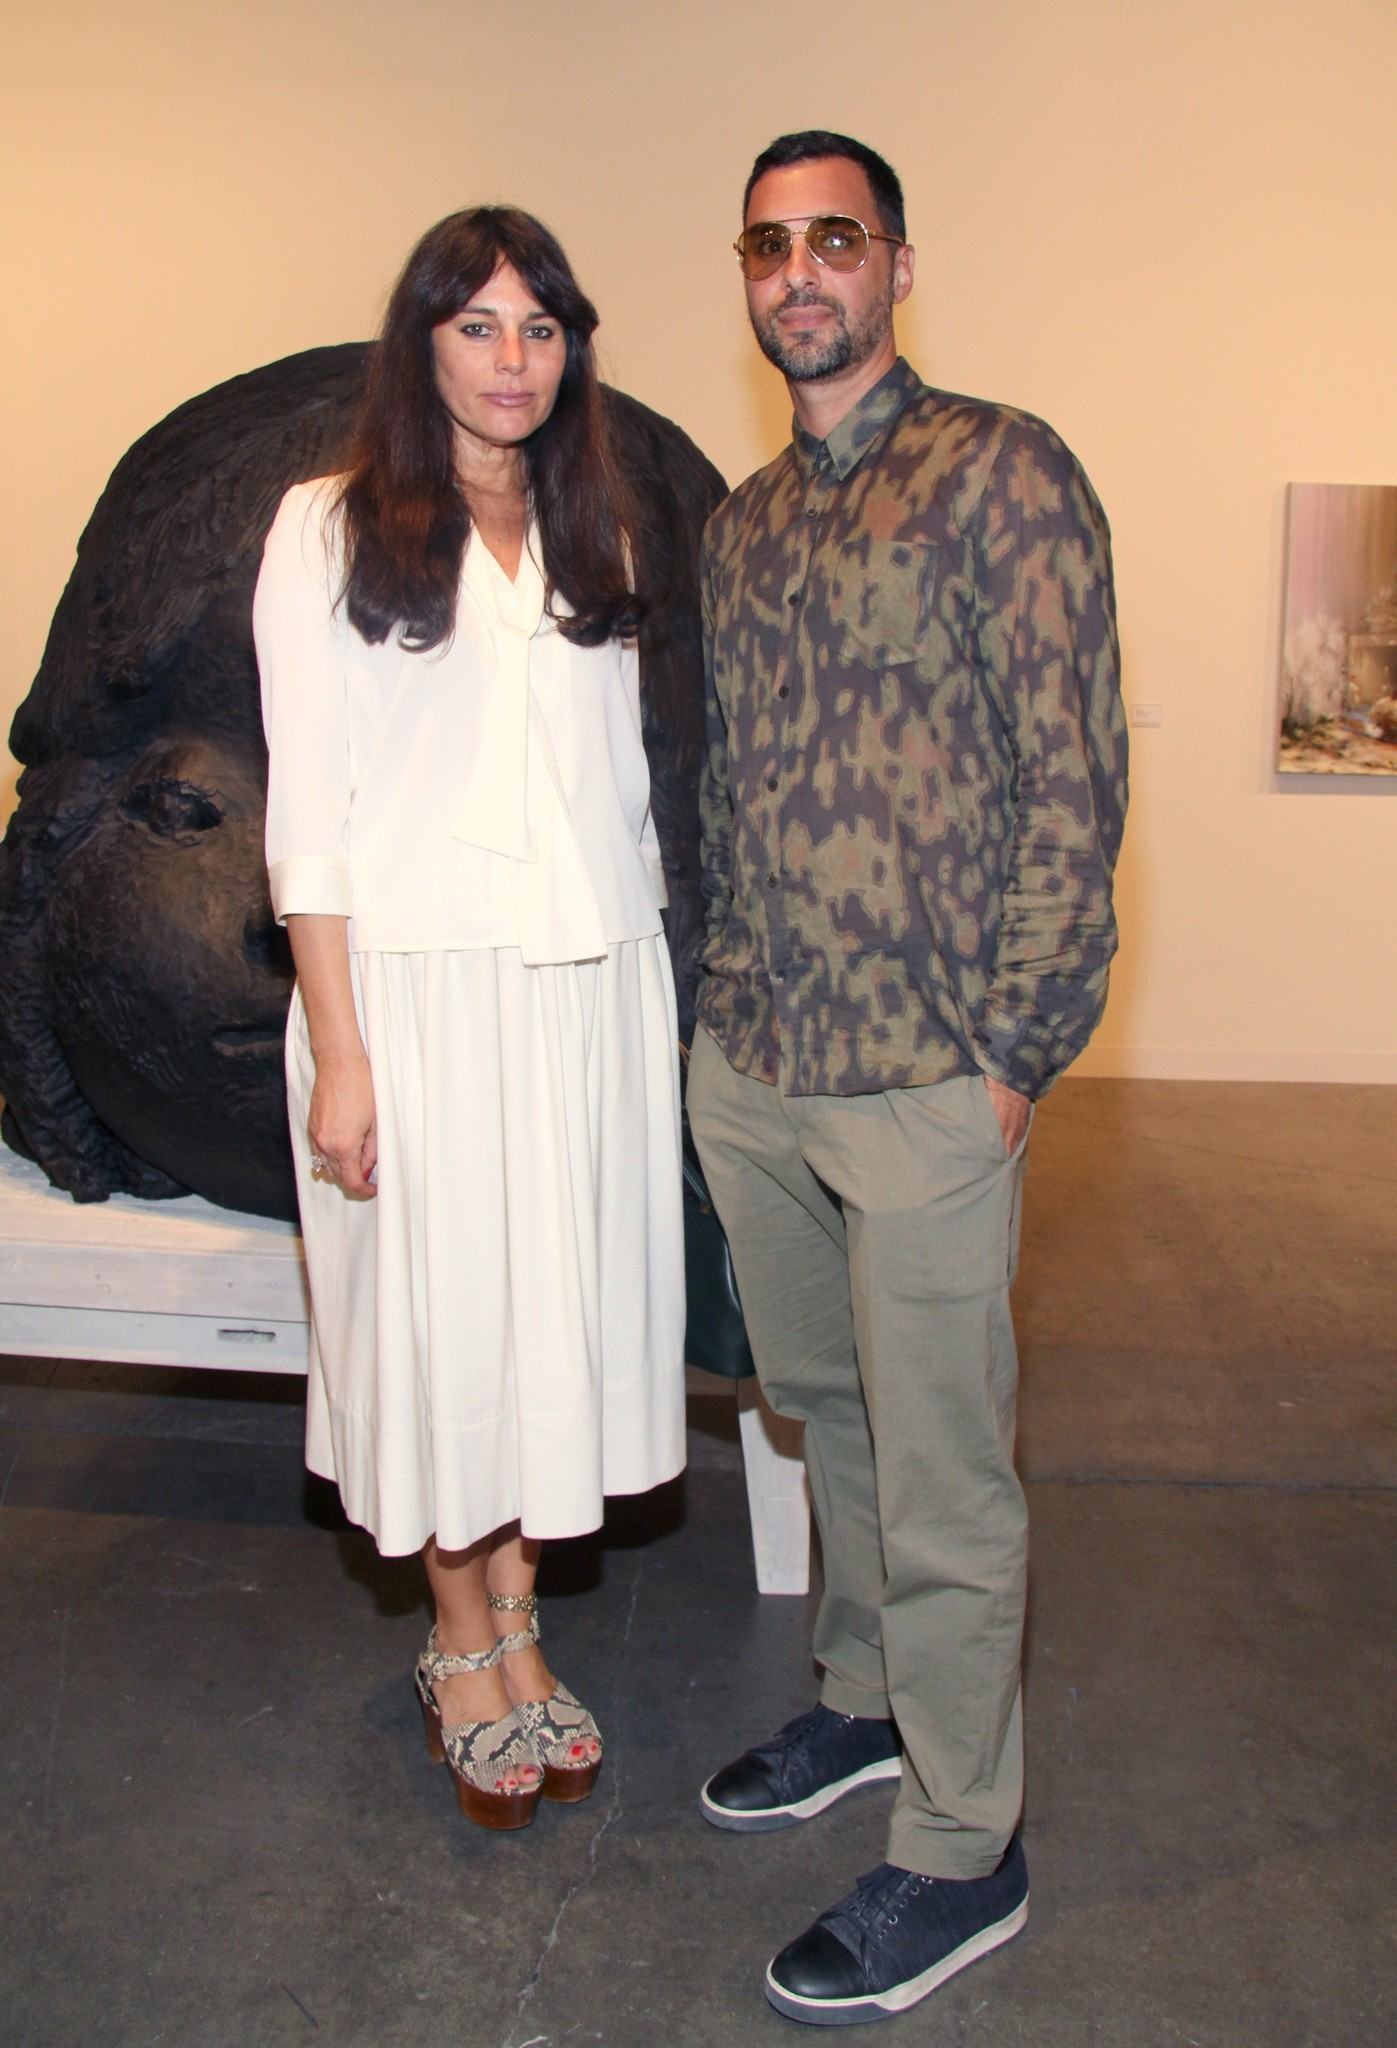 PHOTOS: Artists, celebs at Art Basel - Lisa Marie Fernandez - Chris Osvai